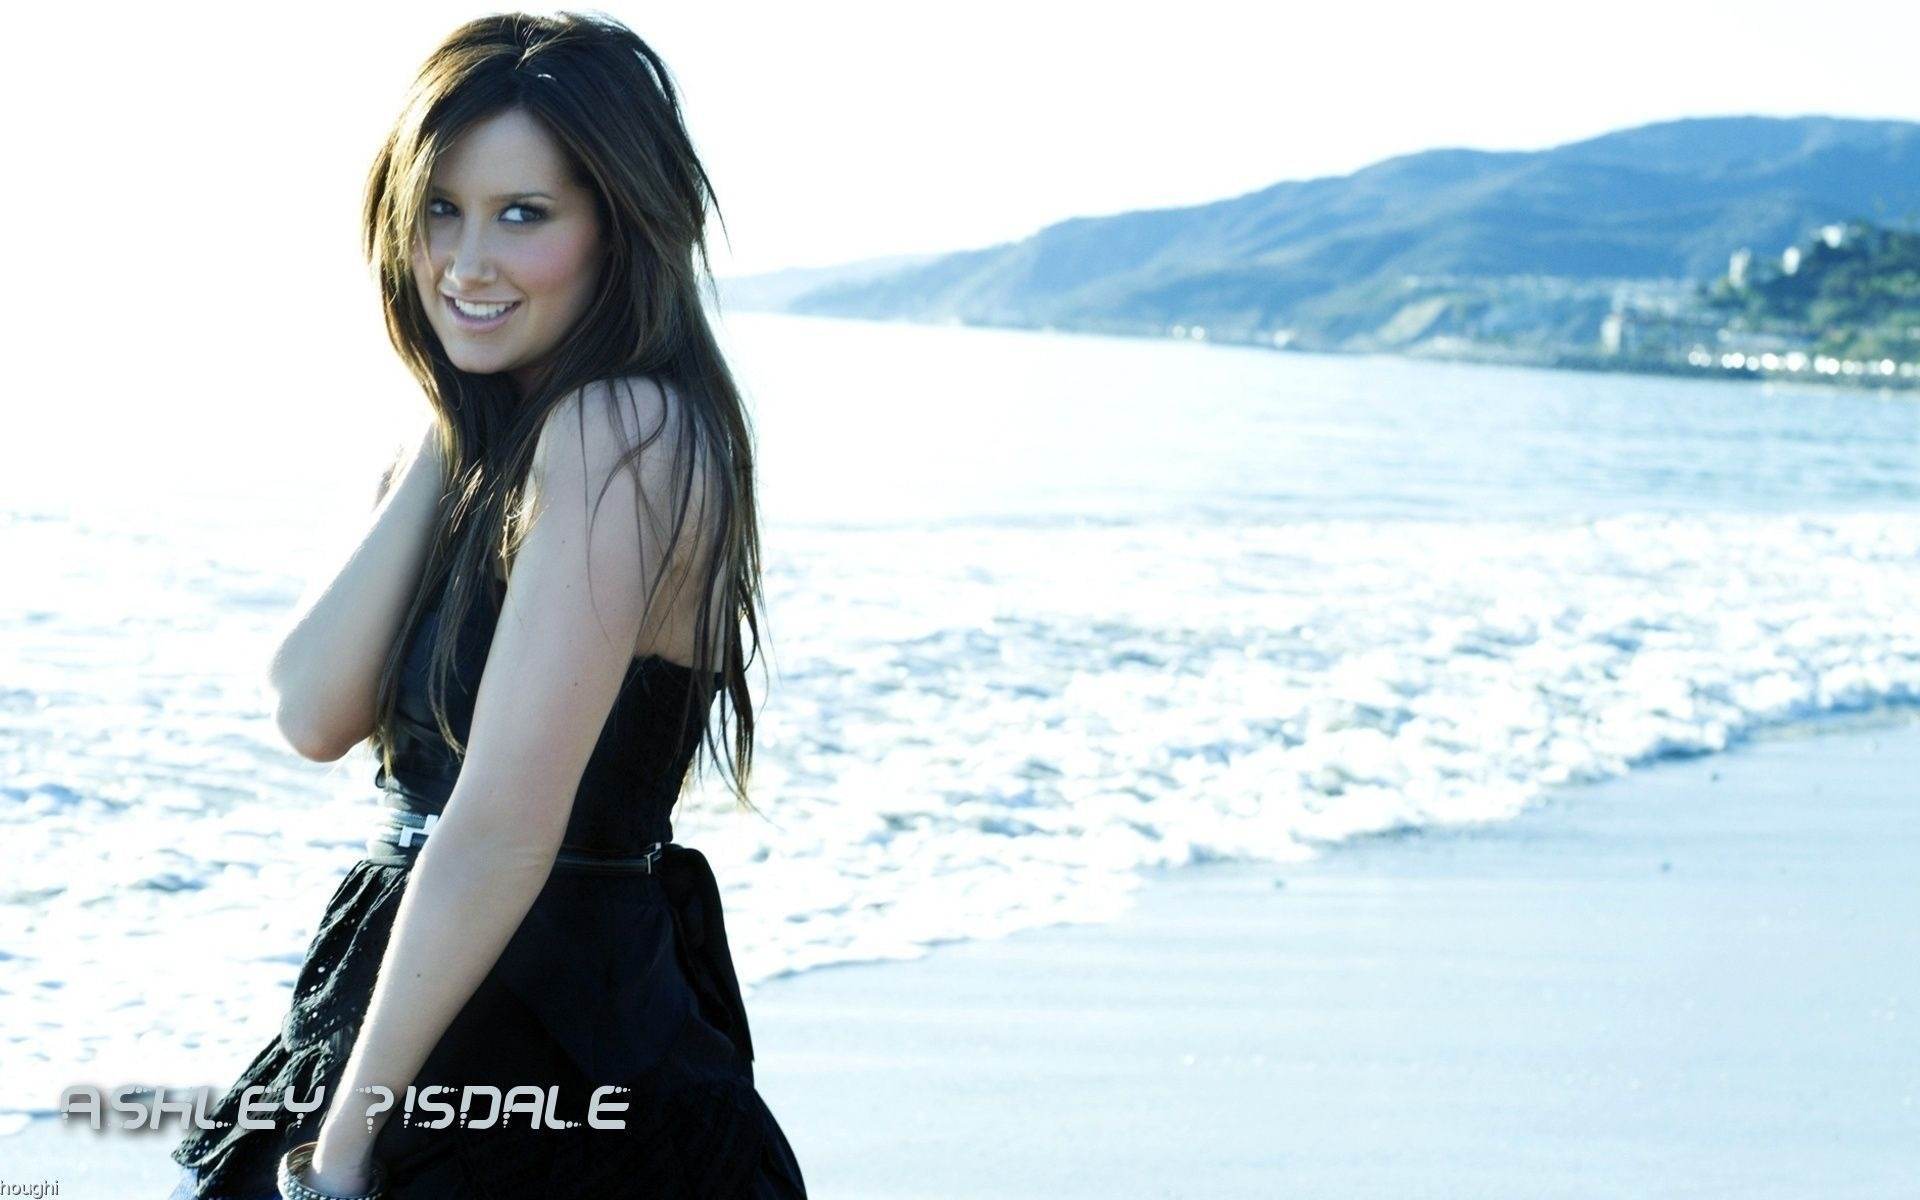 Ashley Tisdale #027 - 1920x1200 Wallpapers Pictures Photos Images